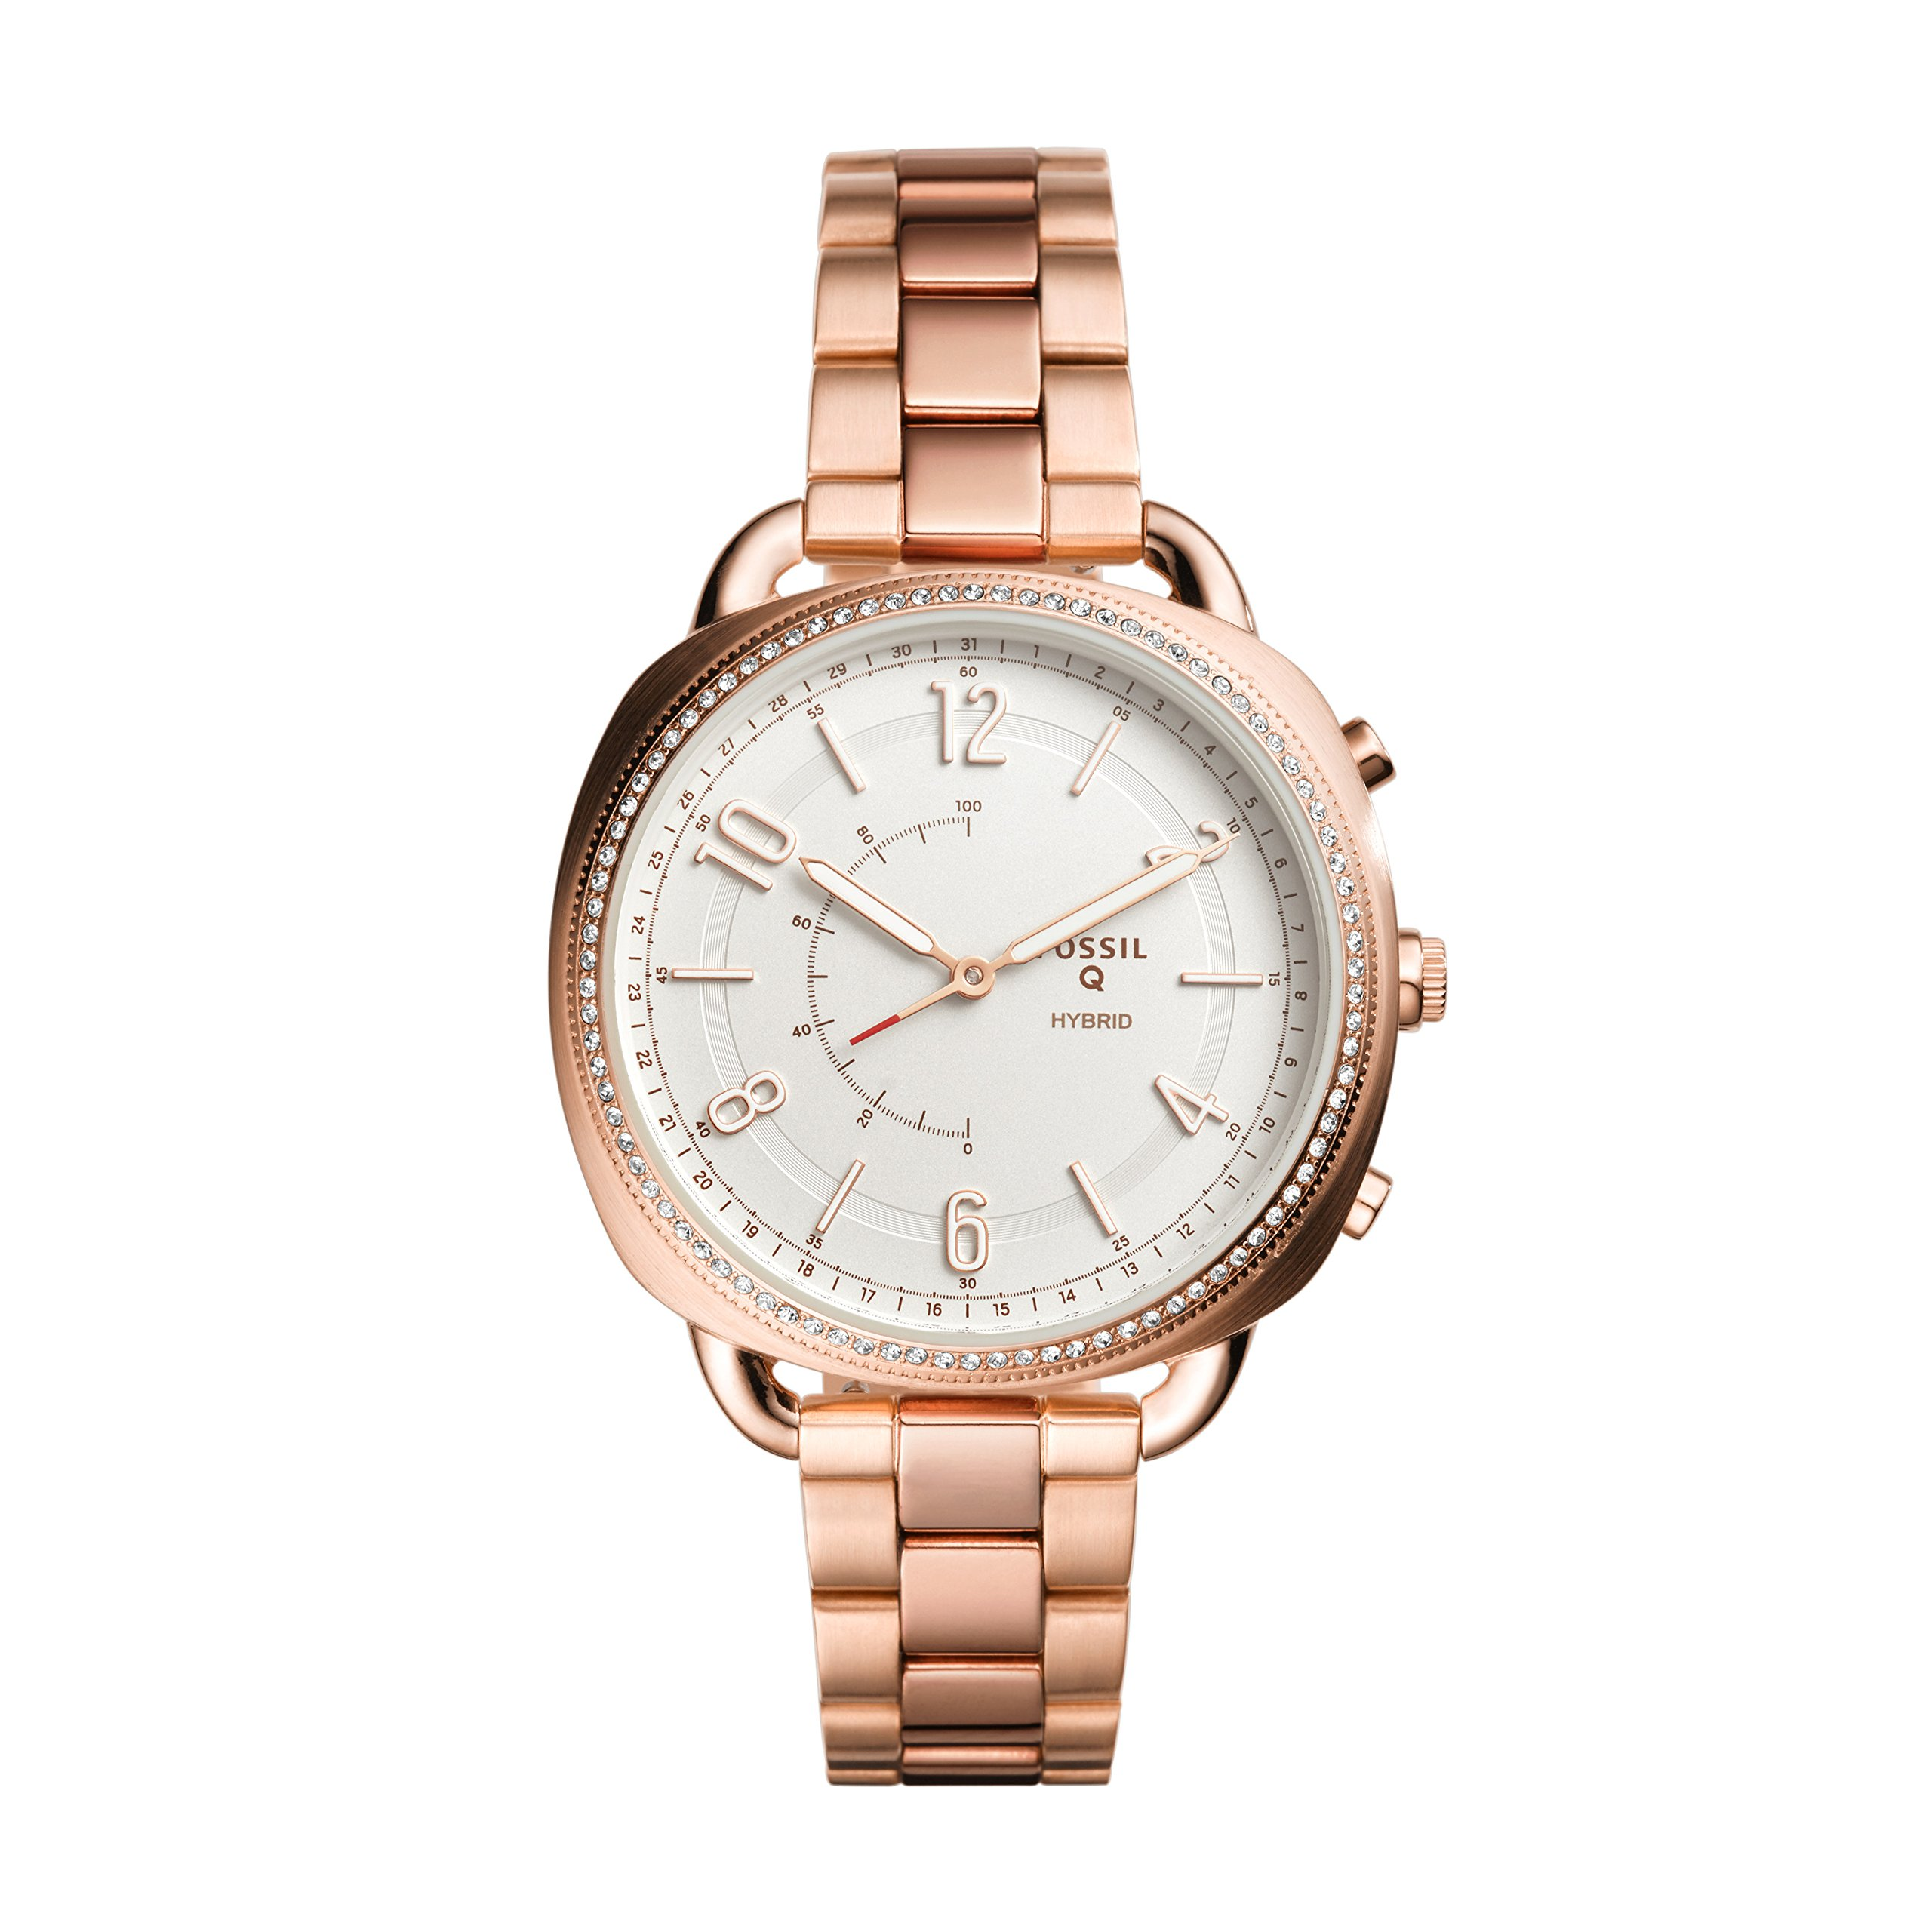 Fossil Hybrid Smartwatch - Q Accomplice Rose Gold-Tone Stainless Steel FTW1208